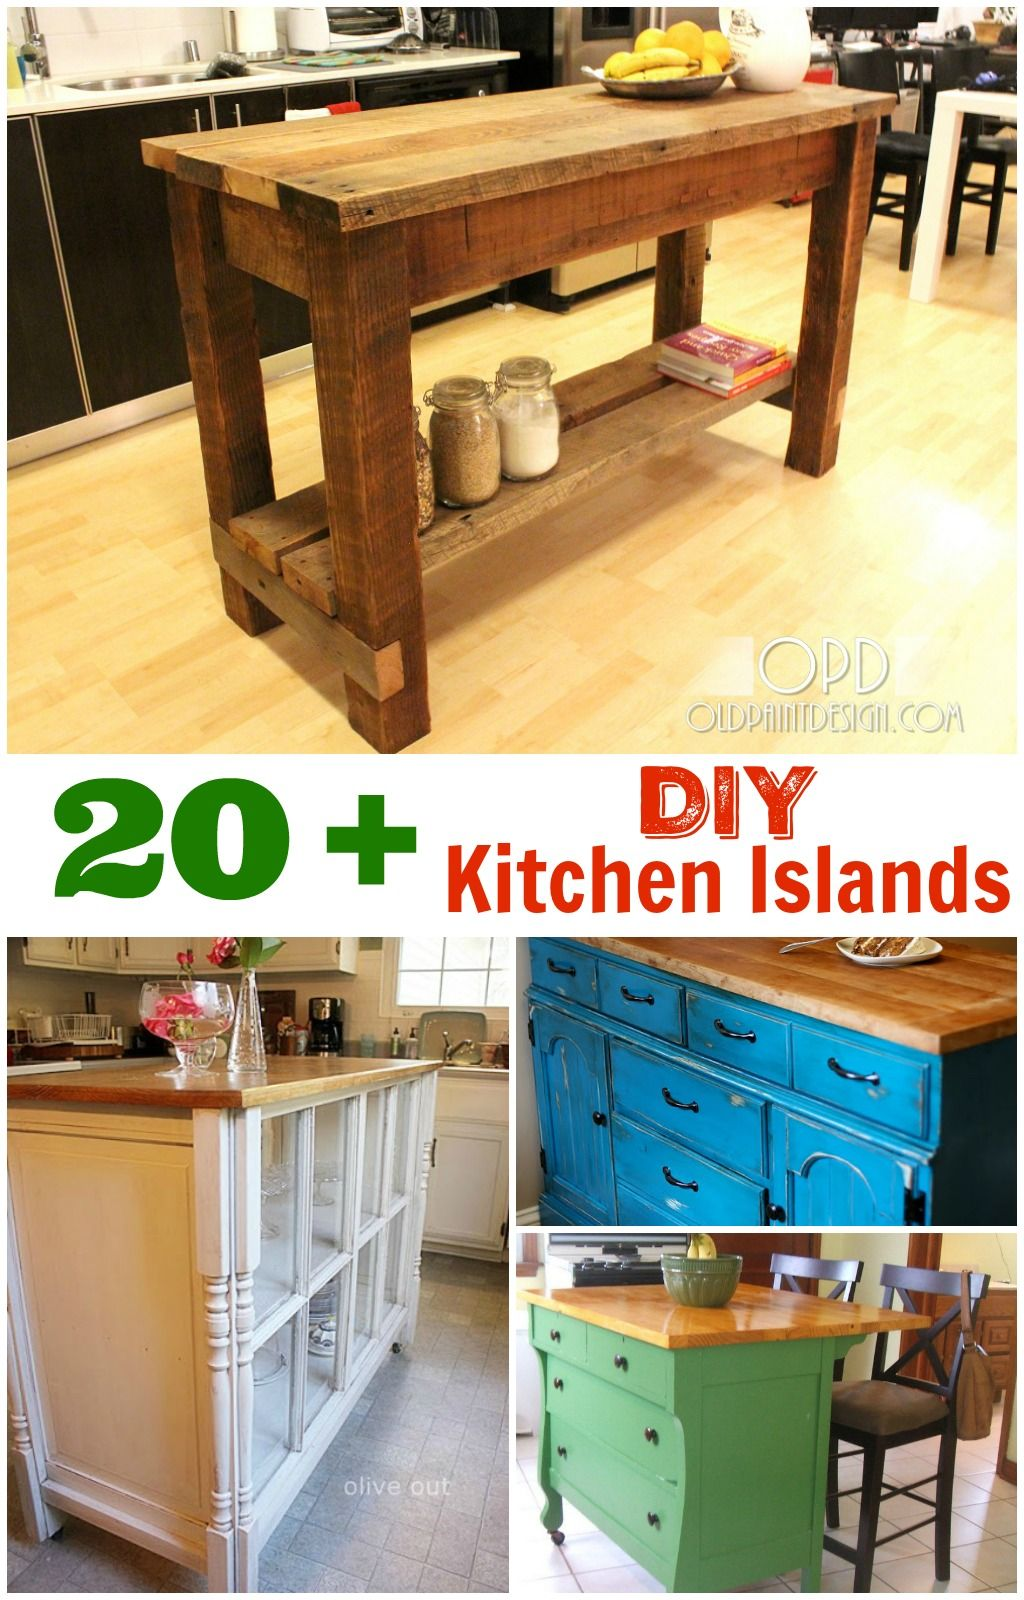 Diy Kitchen Islands These Kitchen Island Diy Projects Are Great